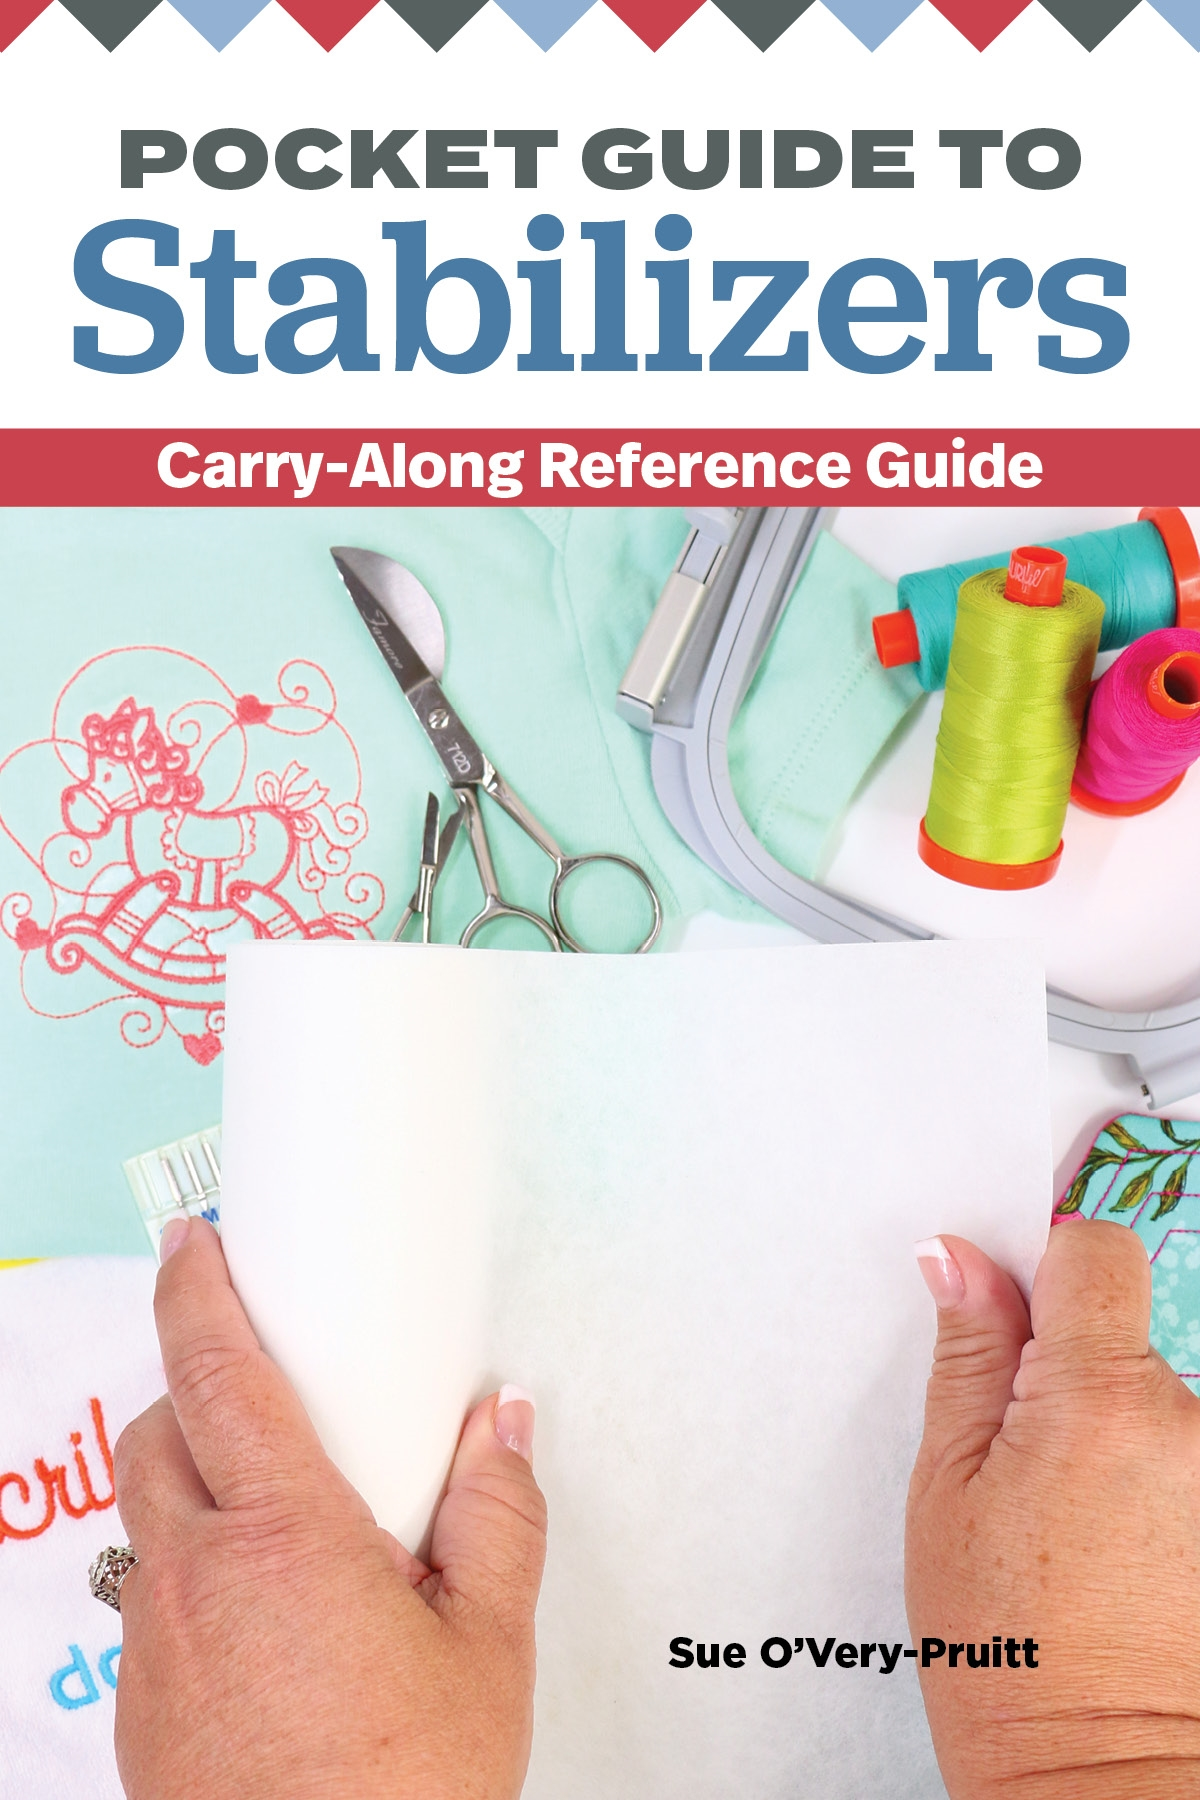 Pocket Guide to Stabilizers